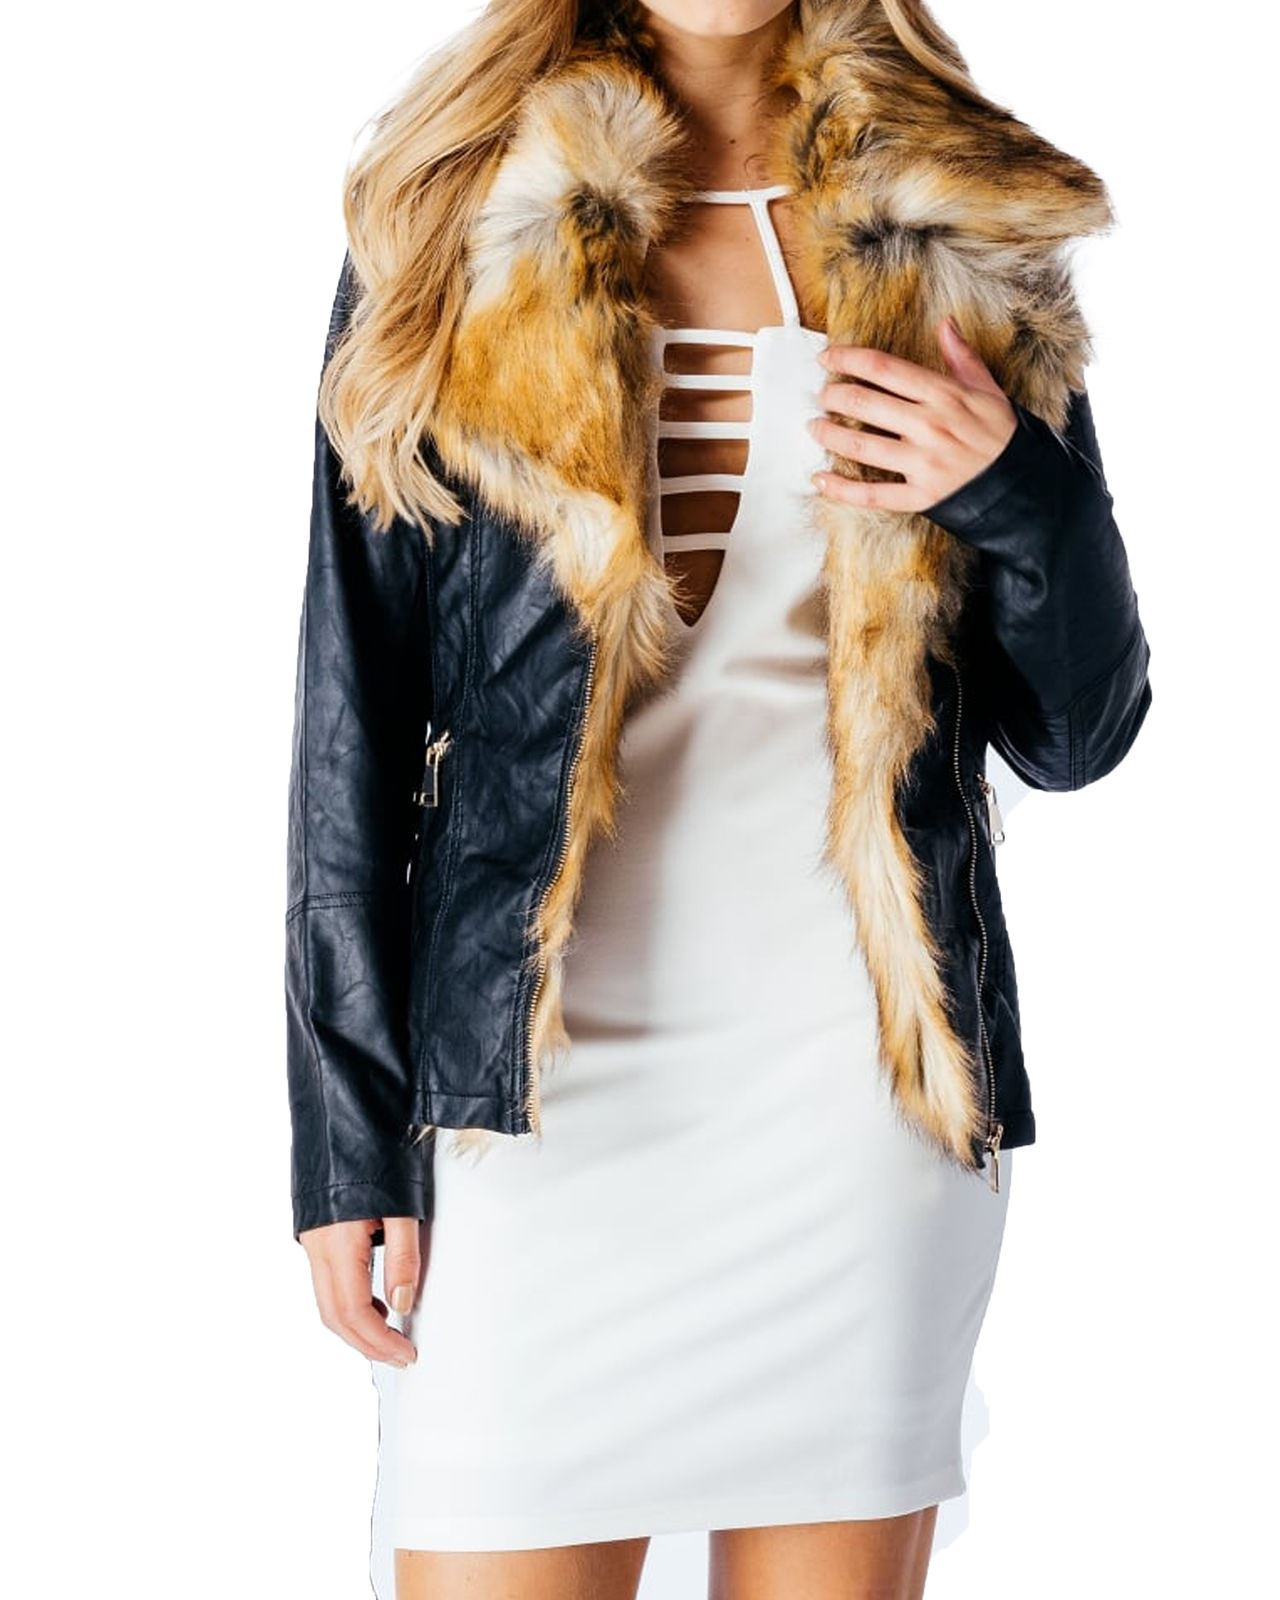 Find Faux fur from the Womens department at Debenhams. Shop a wide range of Coats & jackets products and more at our online shop today. Multicoloured tartan print faux fur collar coat Save. Was £ Now £ Yumi Black faux fur coat Save. Was £ Now £